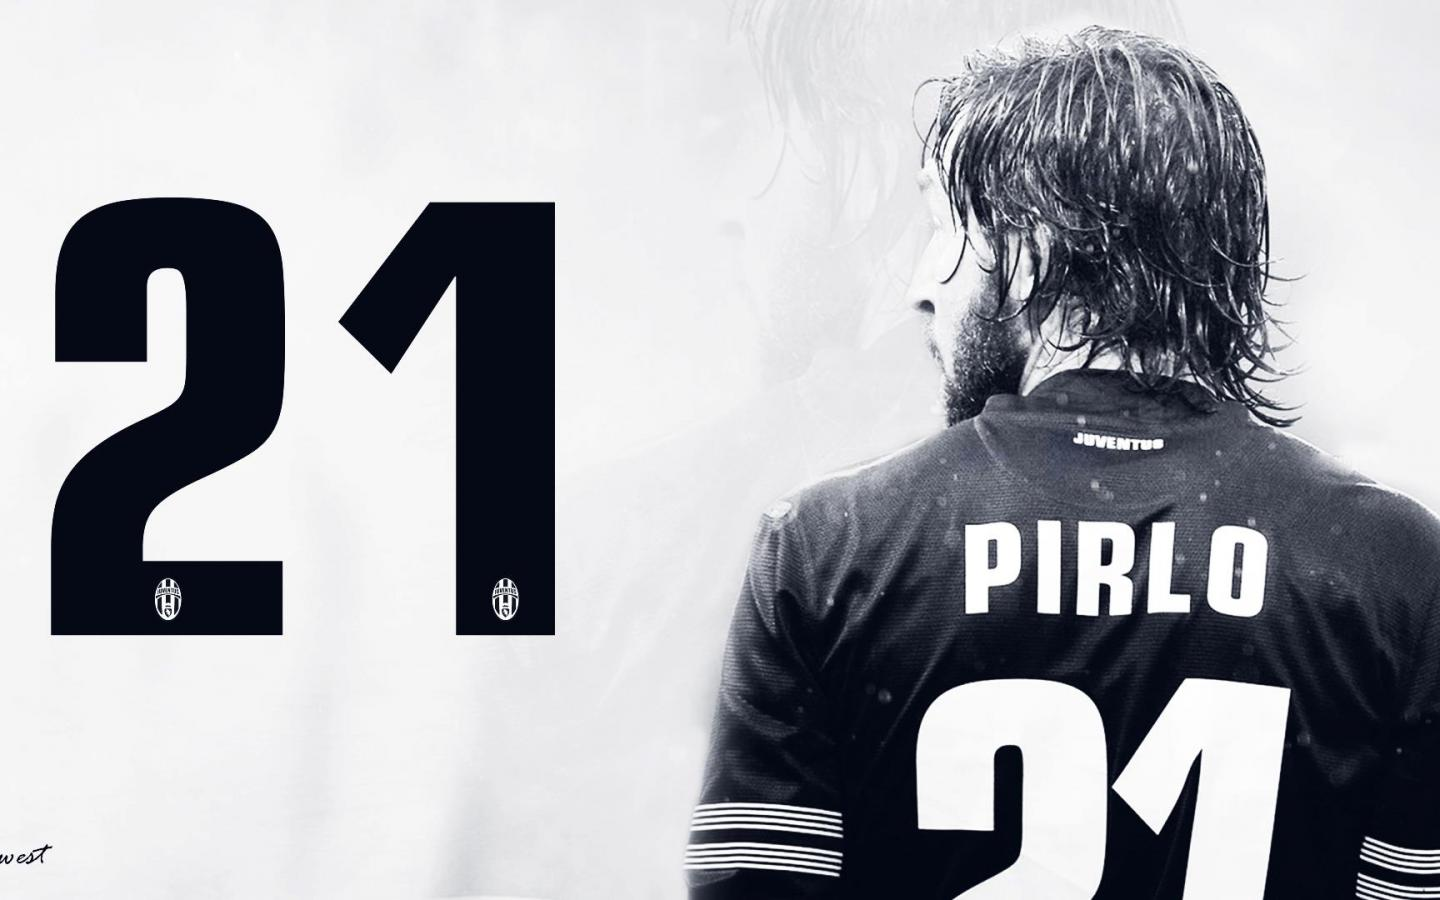 1440x900 - Andrea Pirlo Wallpapers 30